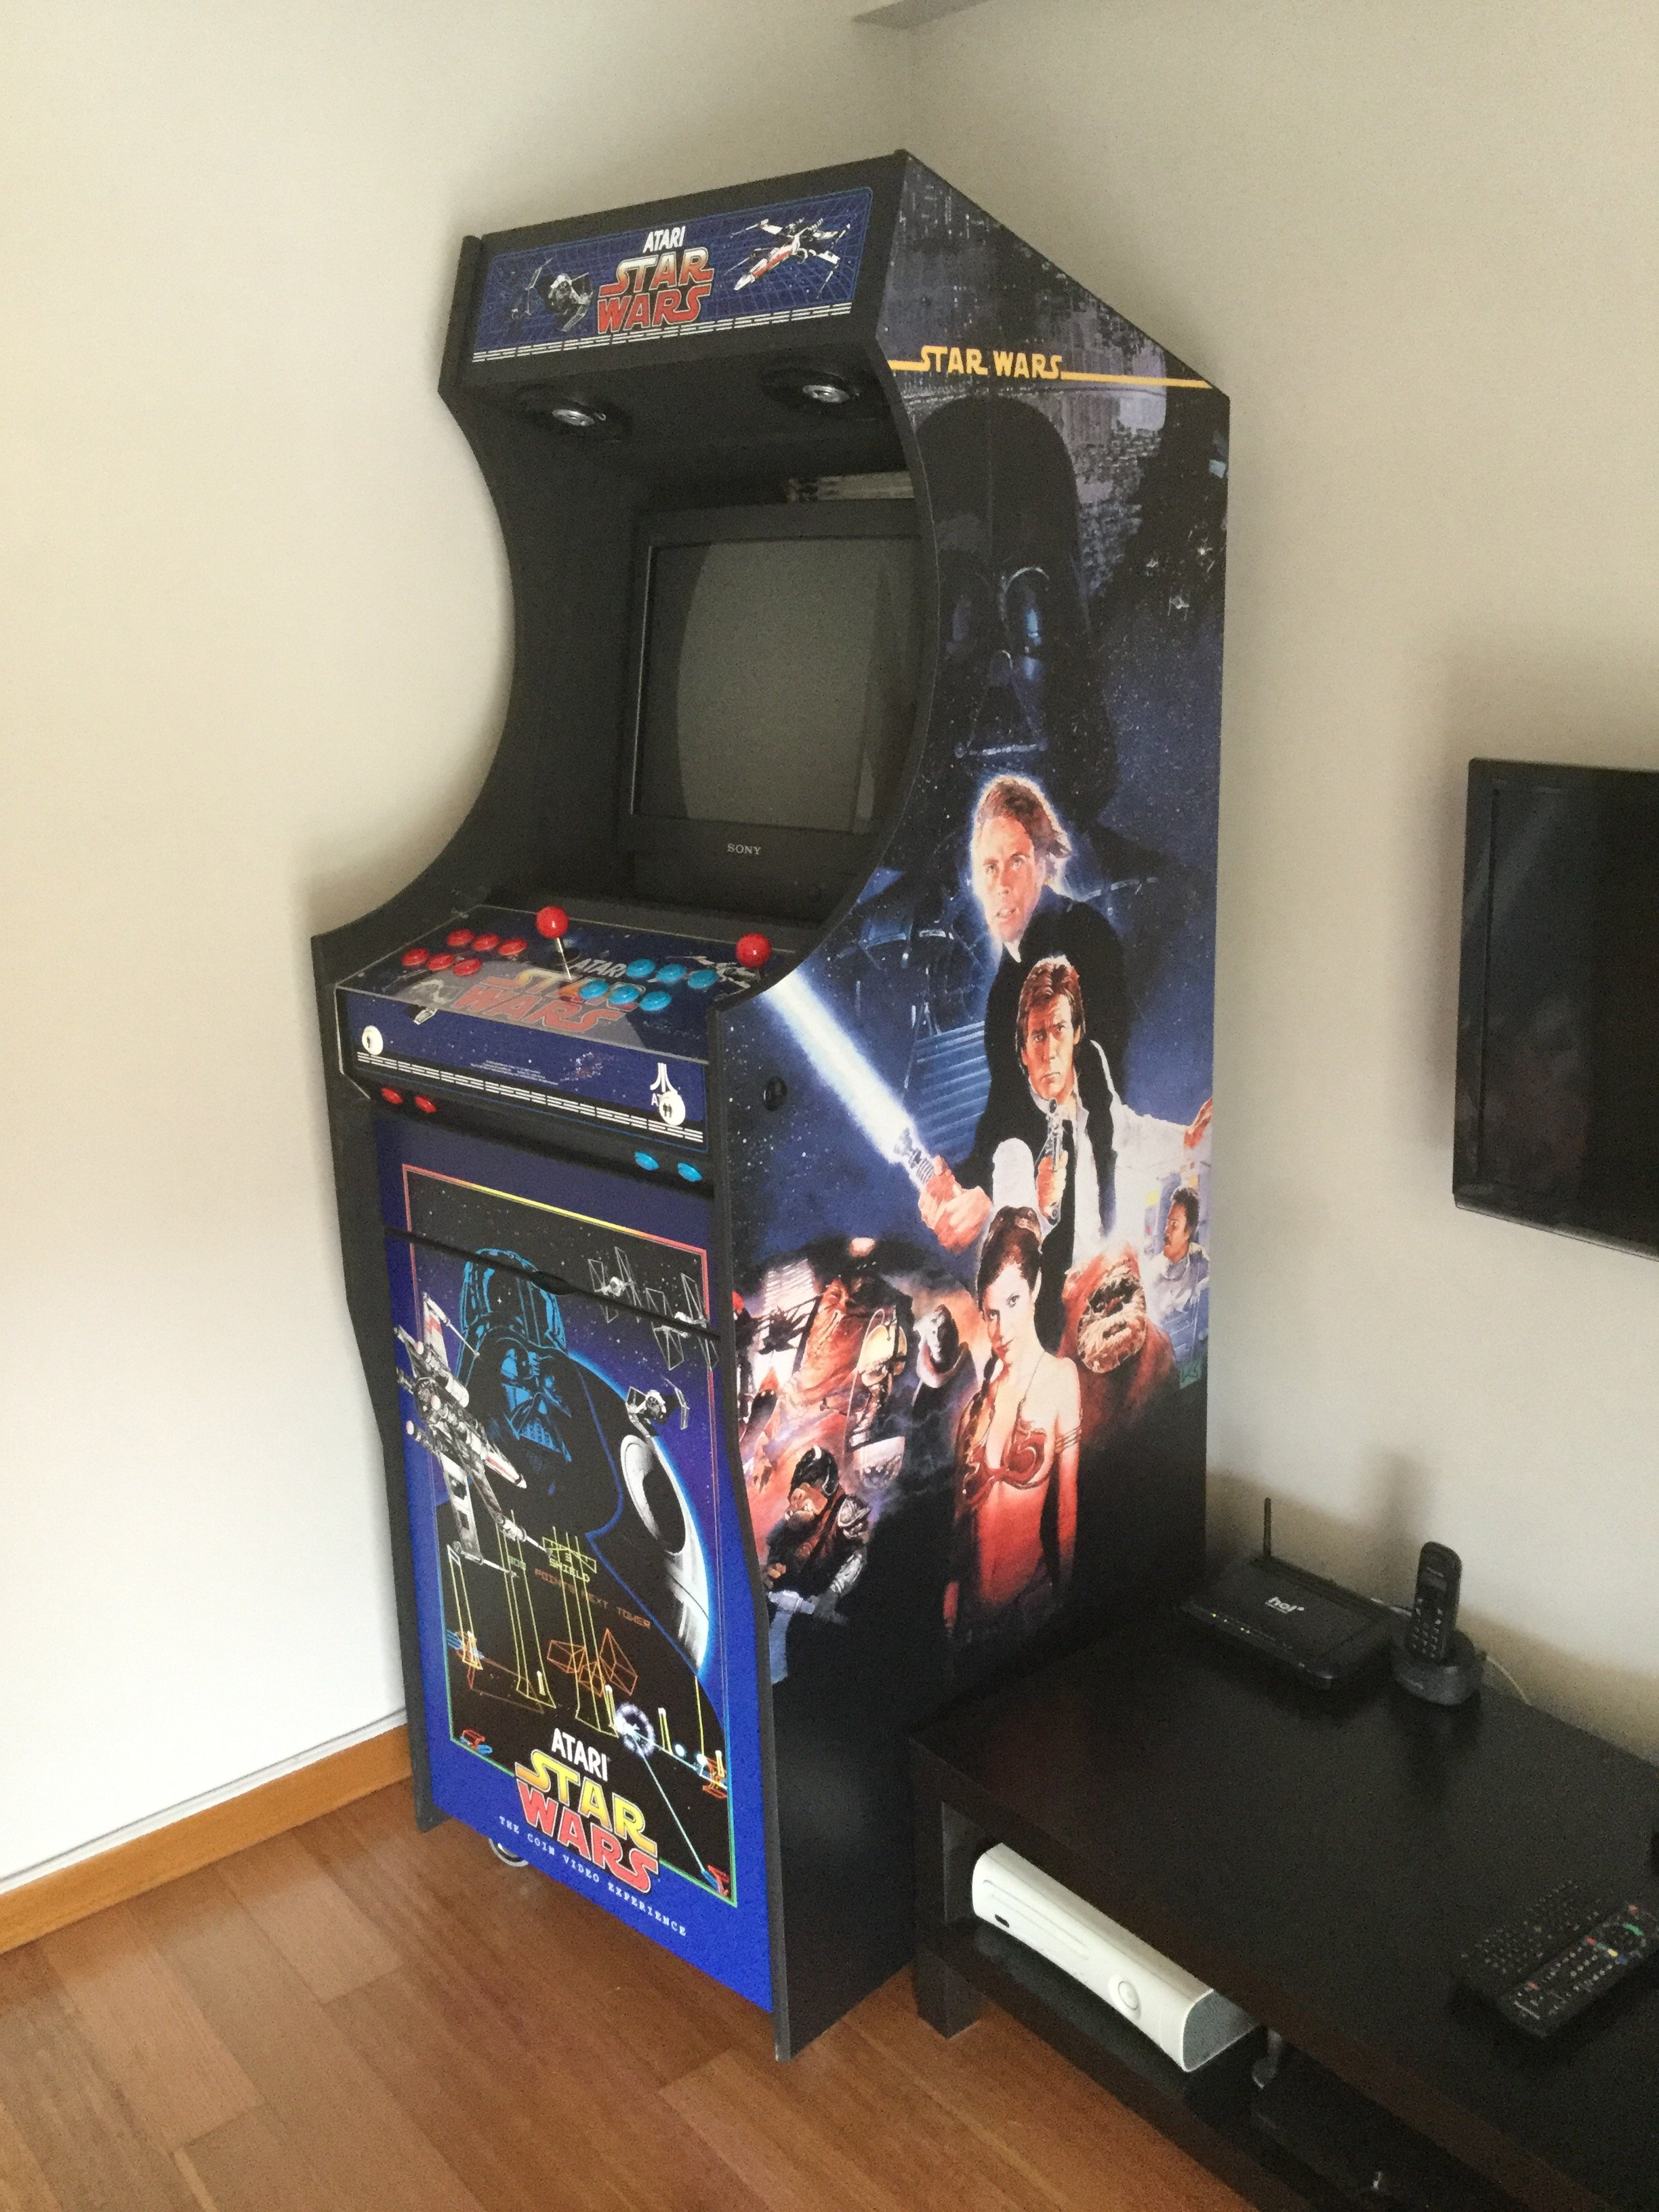 Star Wars arcade cabinet - Collections and Builds - LaunchBox ...